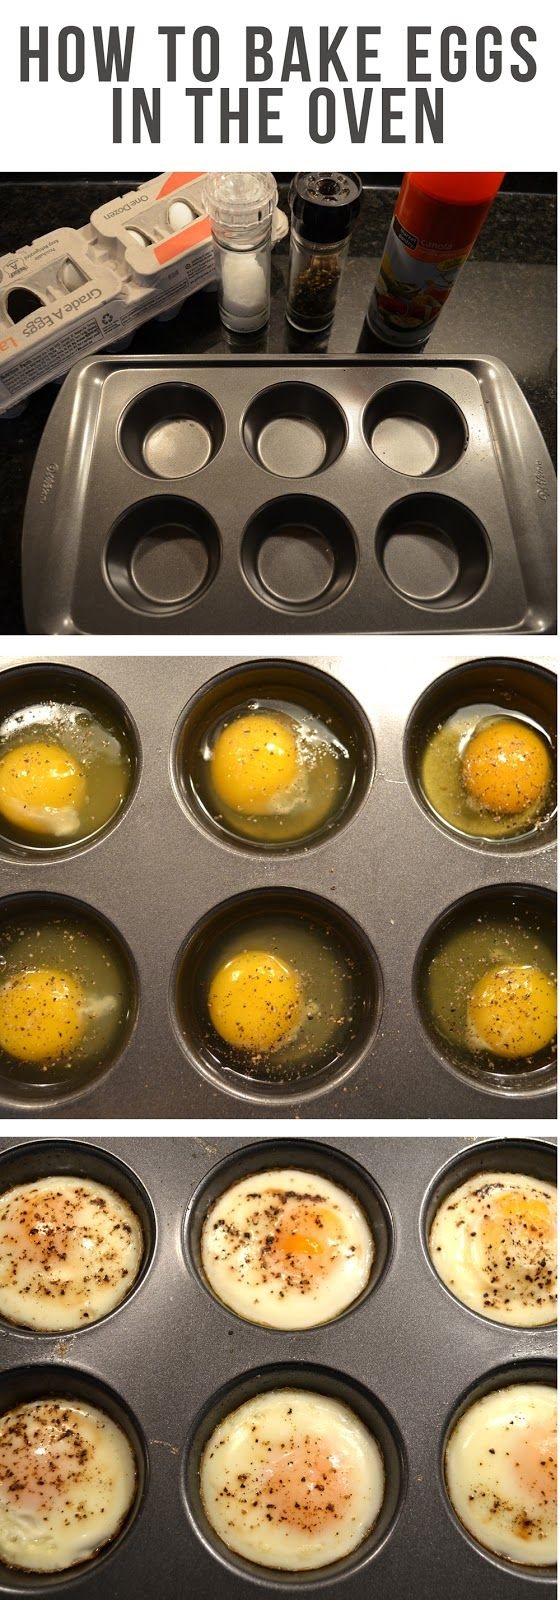 how to bake eggs in the oven - Judith's comment: save this quick & easy recipe for over the holidays, when you are having a large party for breakfast or/and overnight guests.